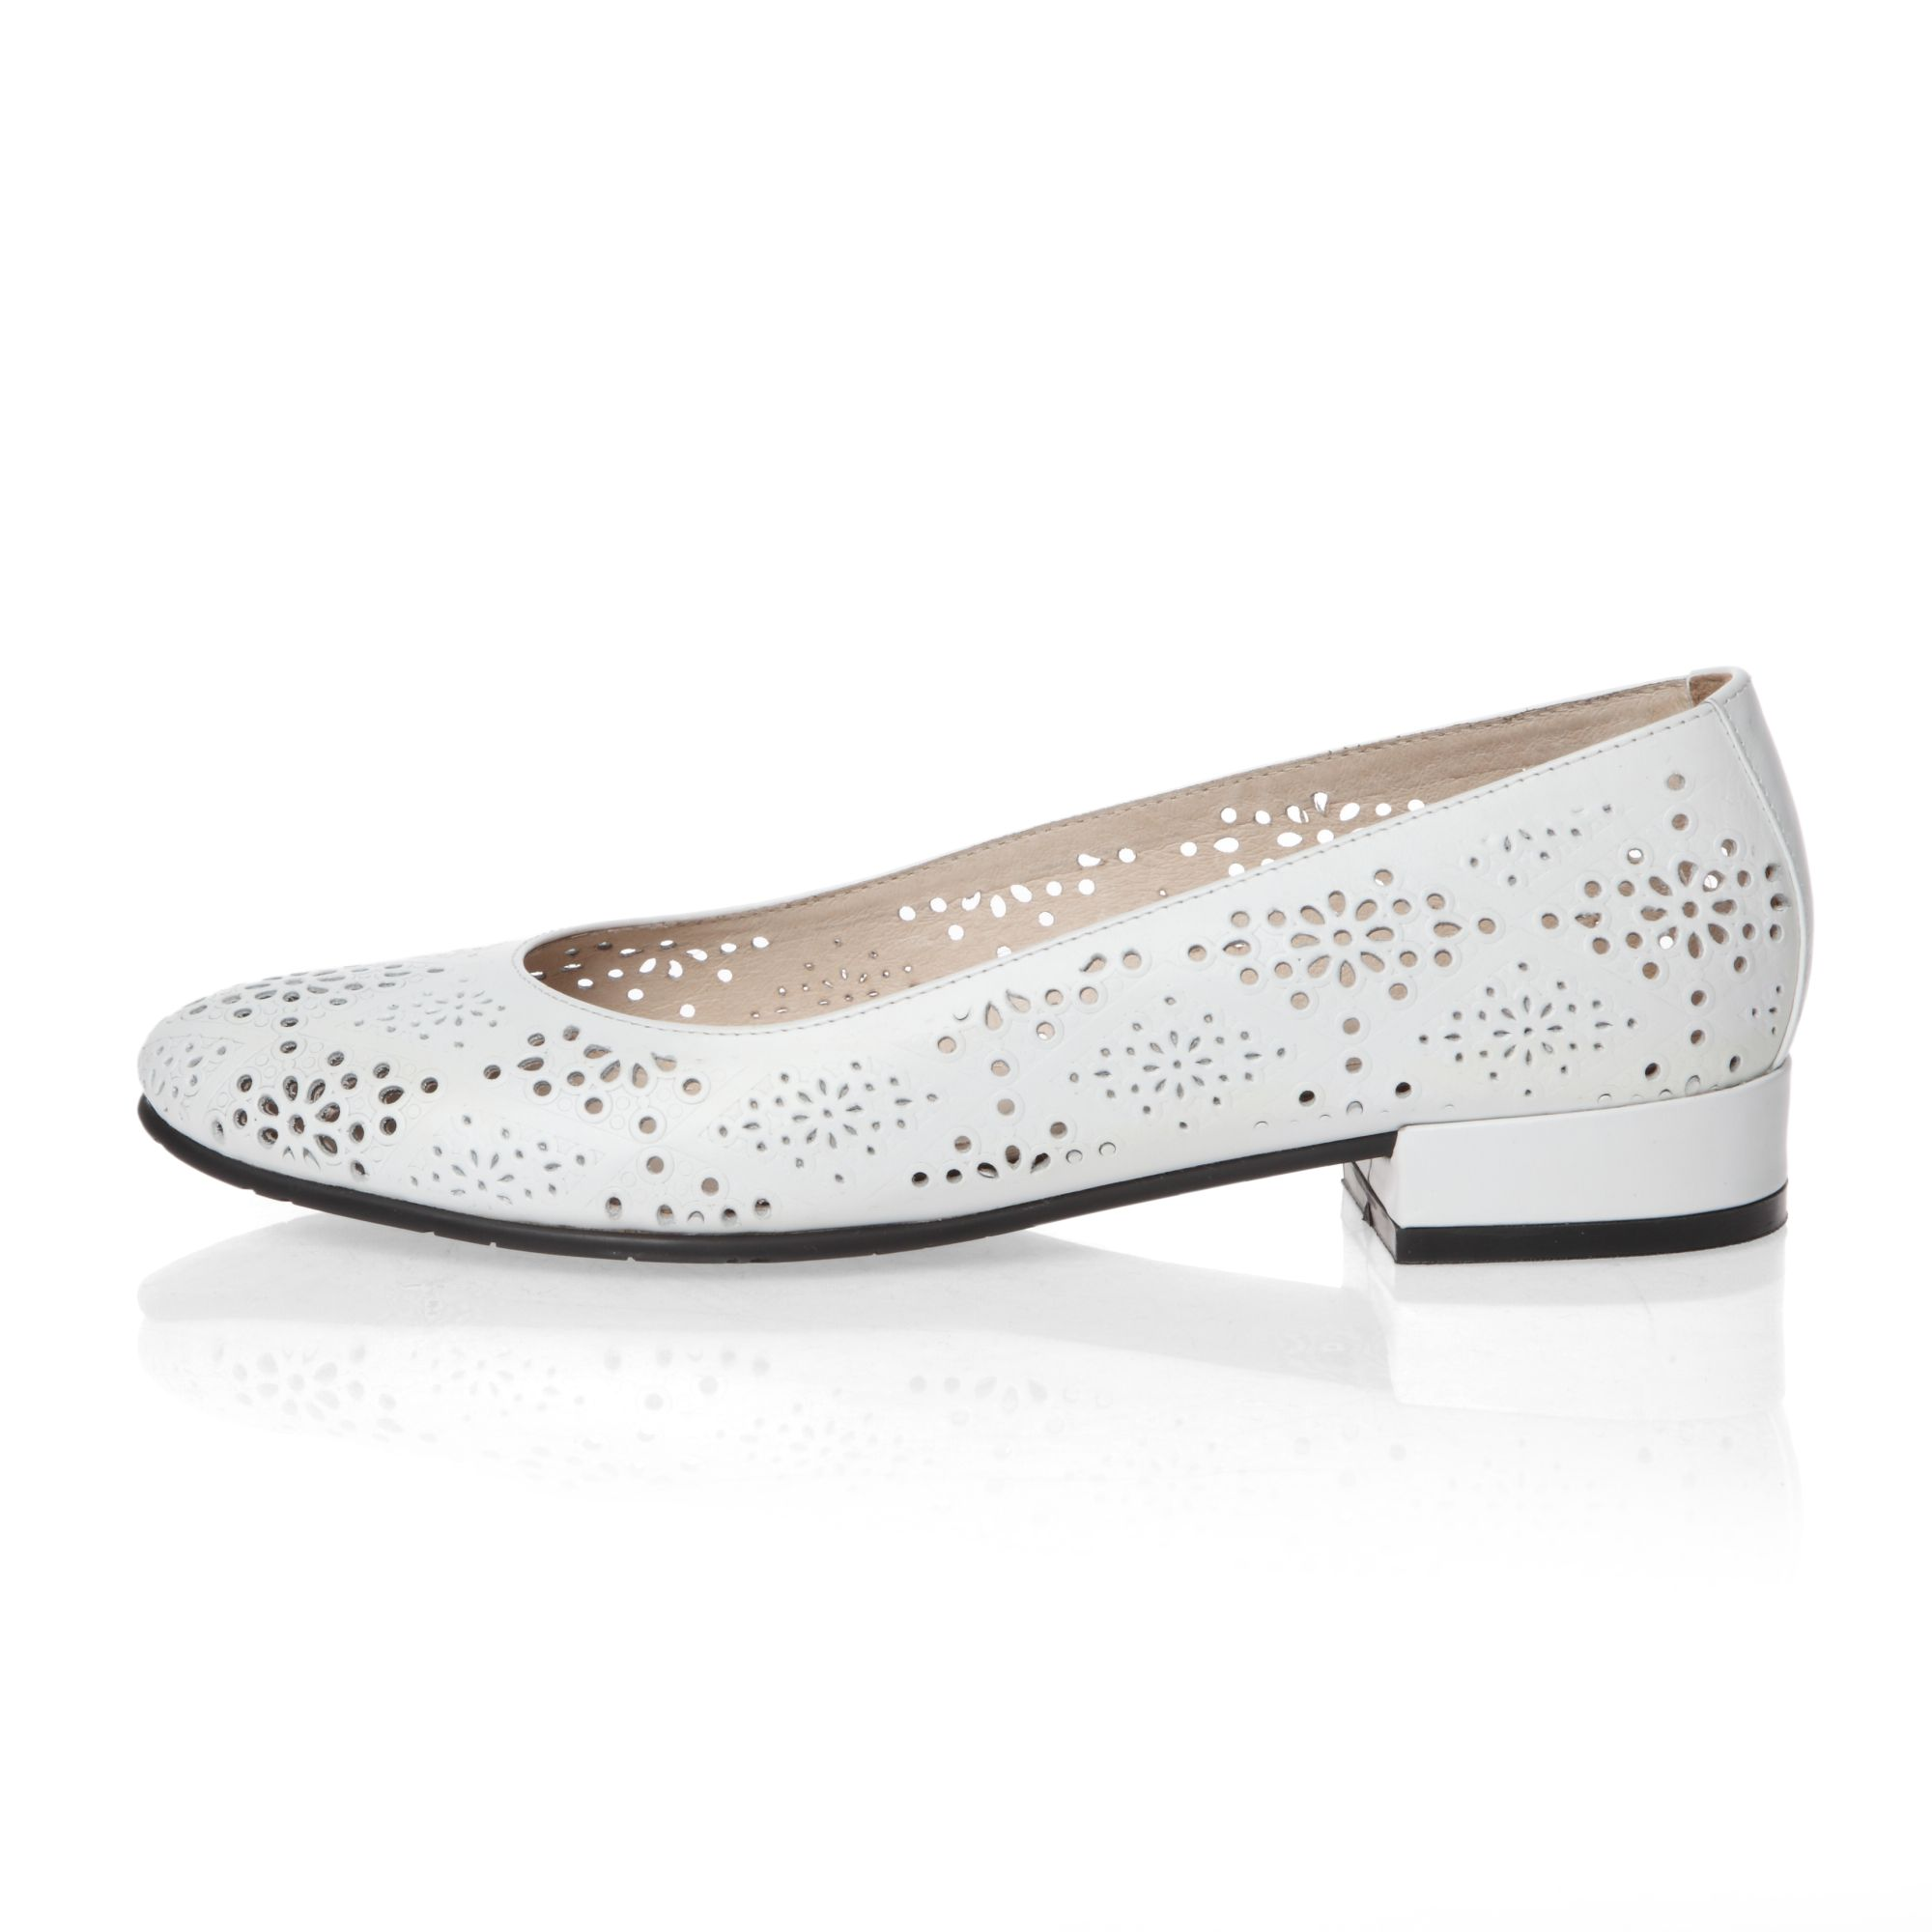 Laser cut detailed low heeled court shoes